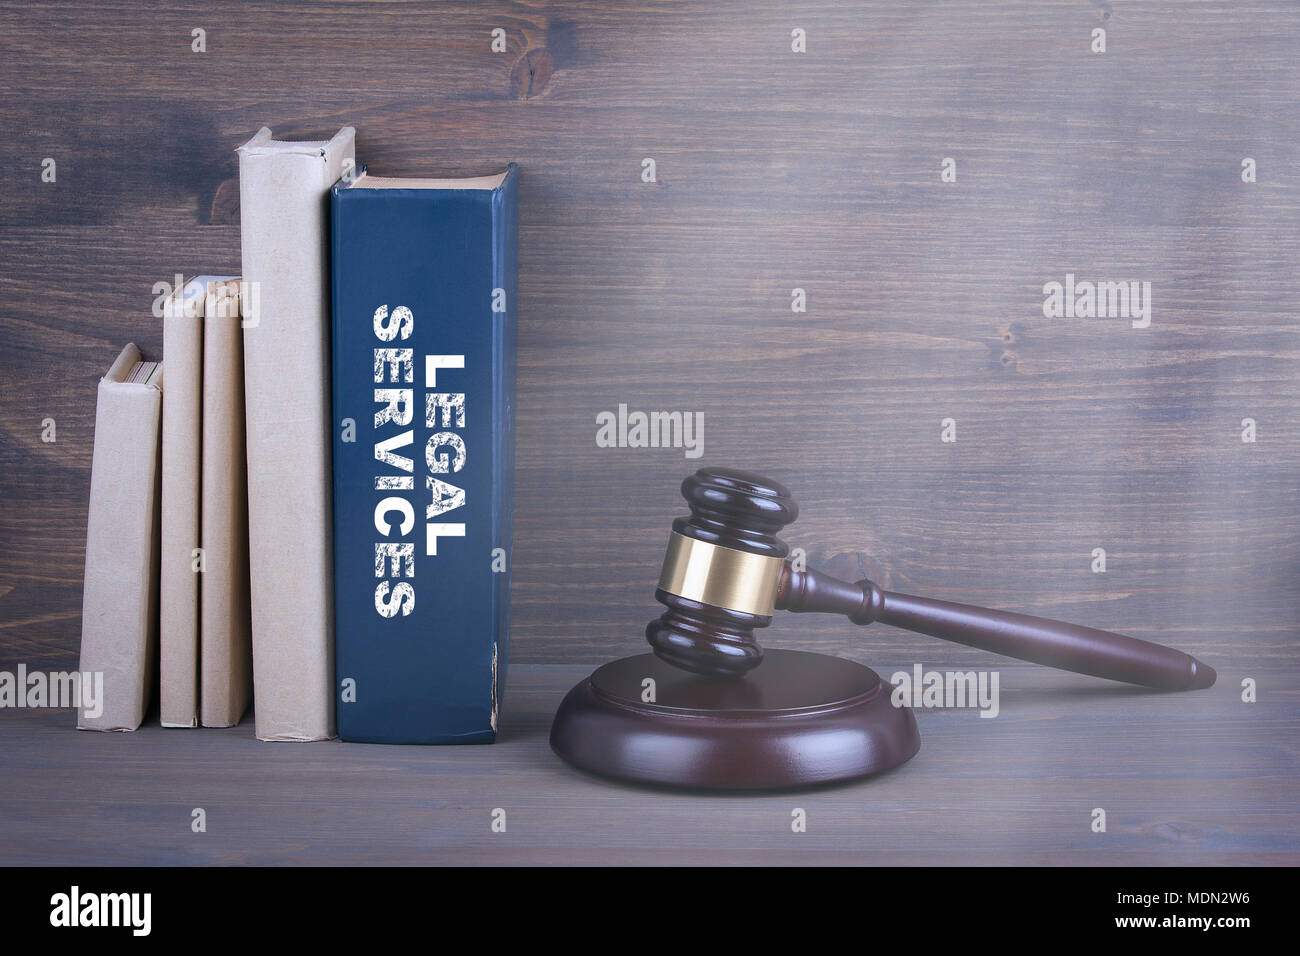 Legal Services. Wooden gavel and books in background. Law and justice concept - Stock Image